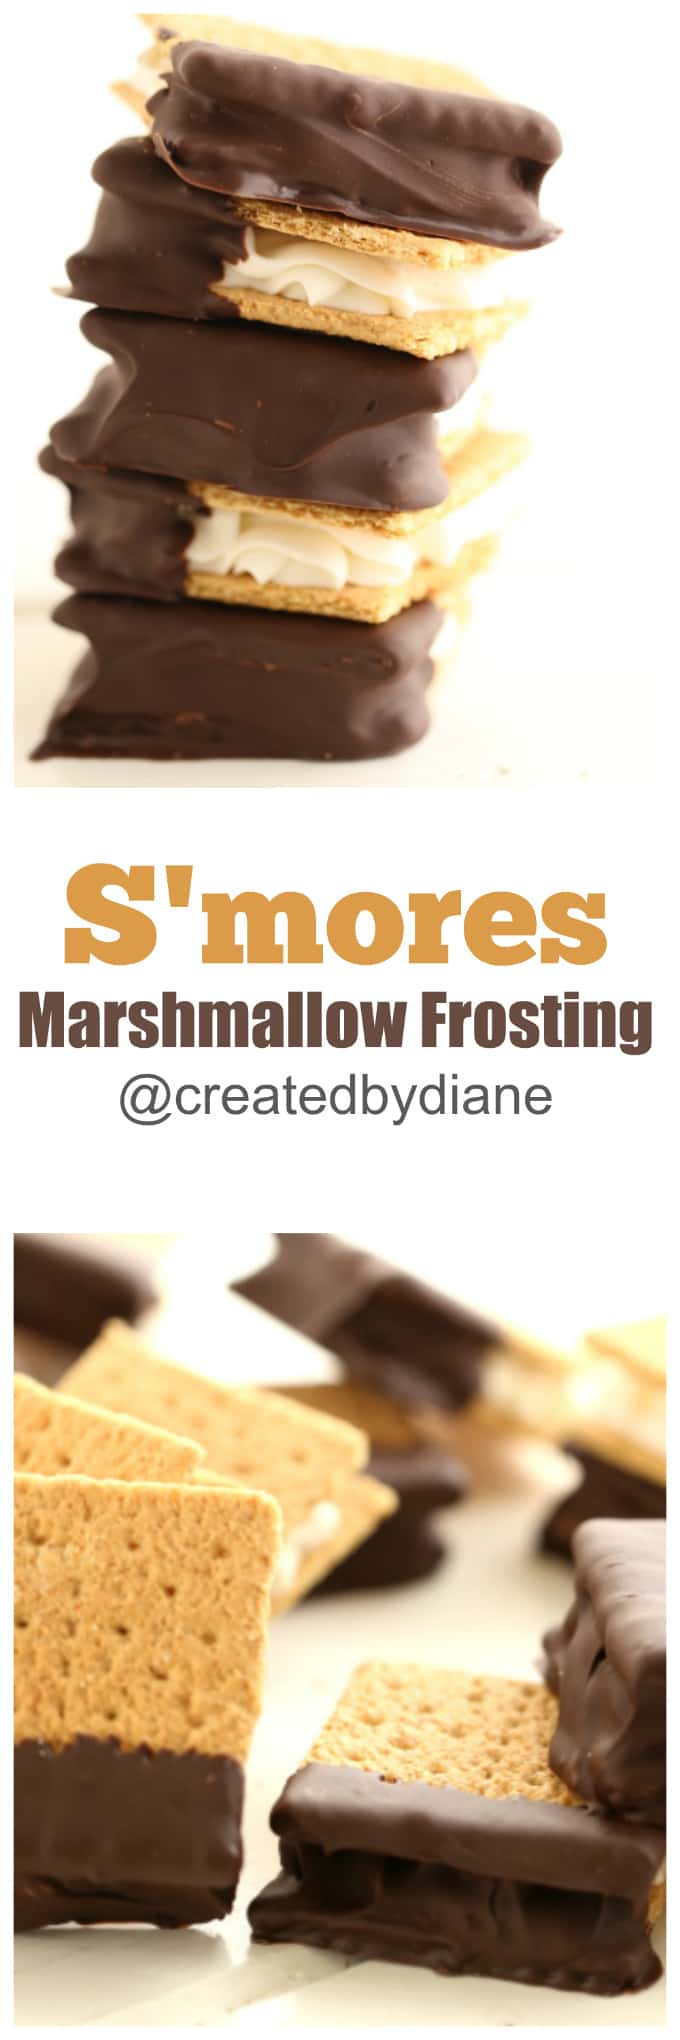 smores-with-marshmallow-frosting-from-createdbydiane